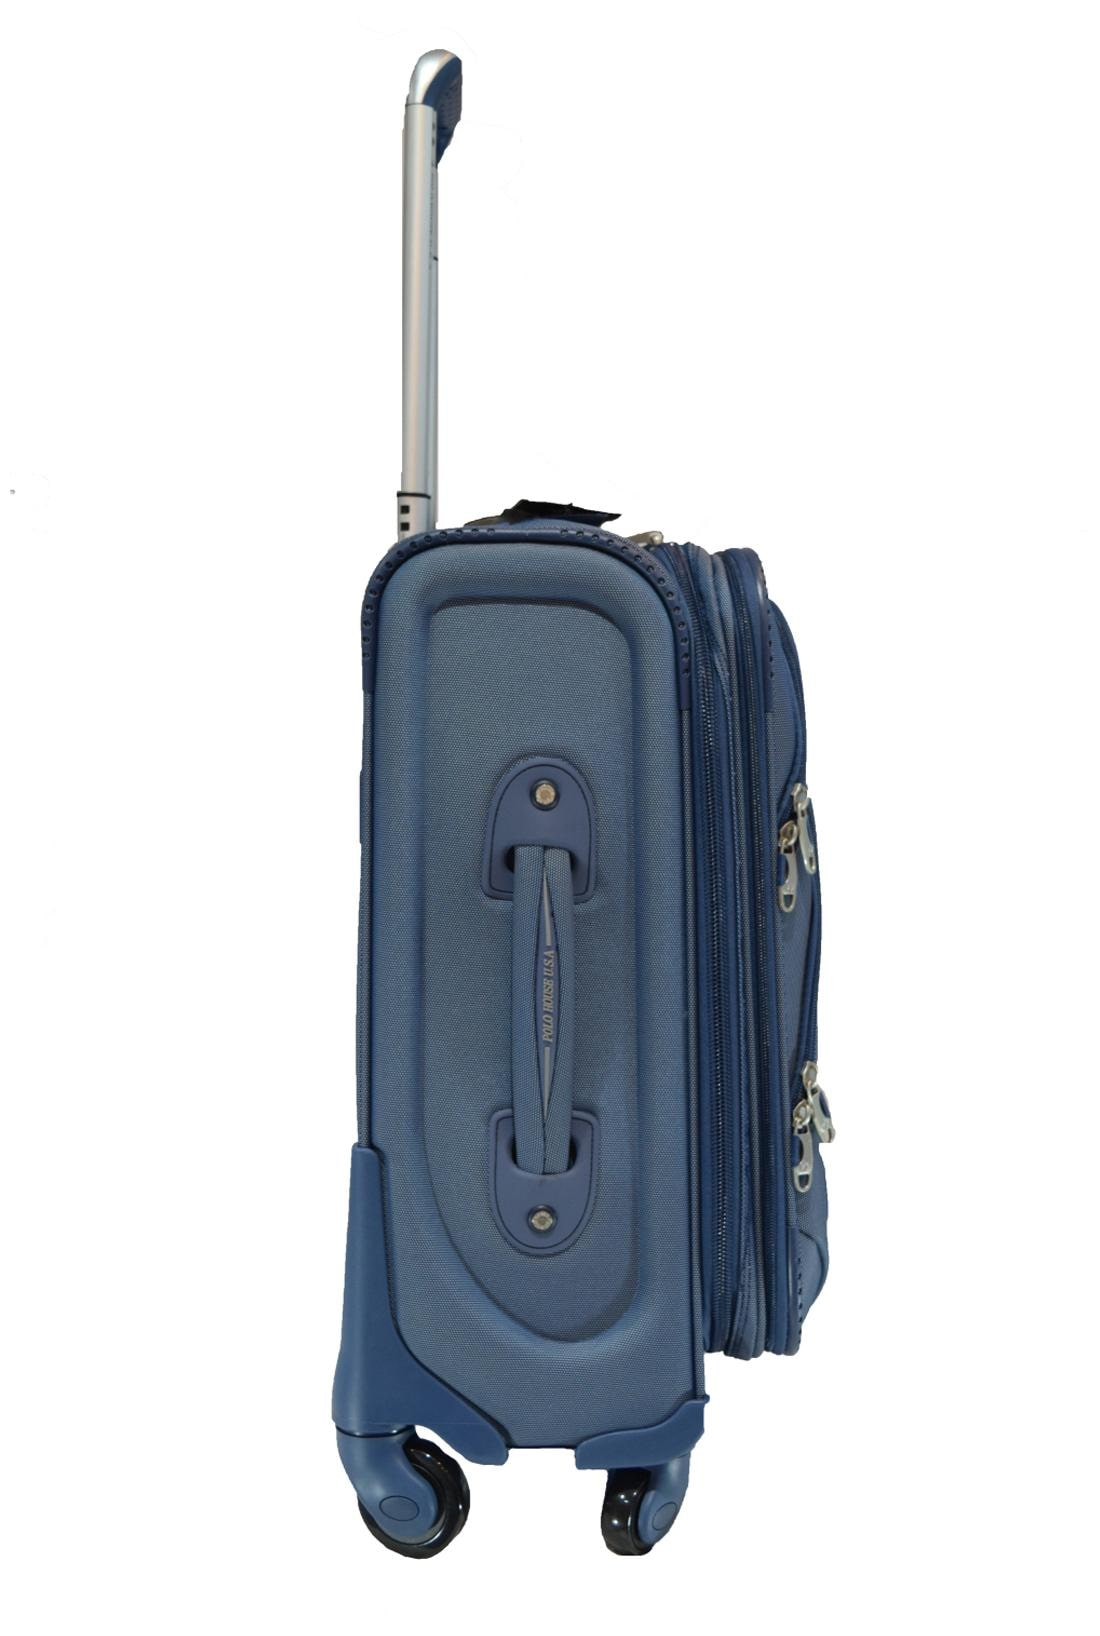 b9fa33cfb1 Buy Polo House USA Blue Travel Bag (Size-28 inch) Online at Low Prices in  India - Paytmmall.com